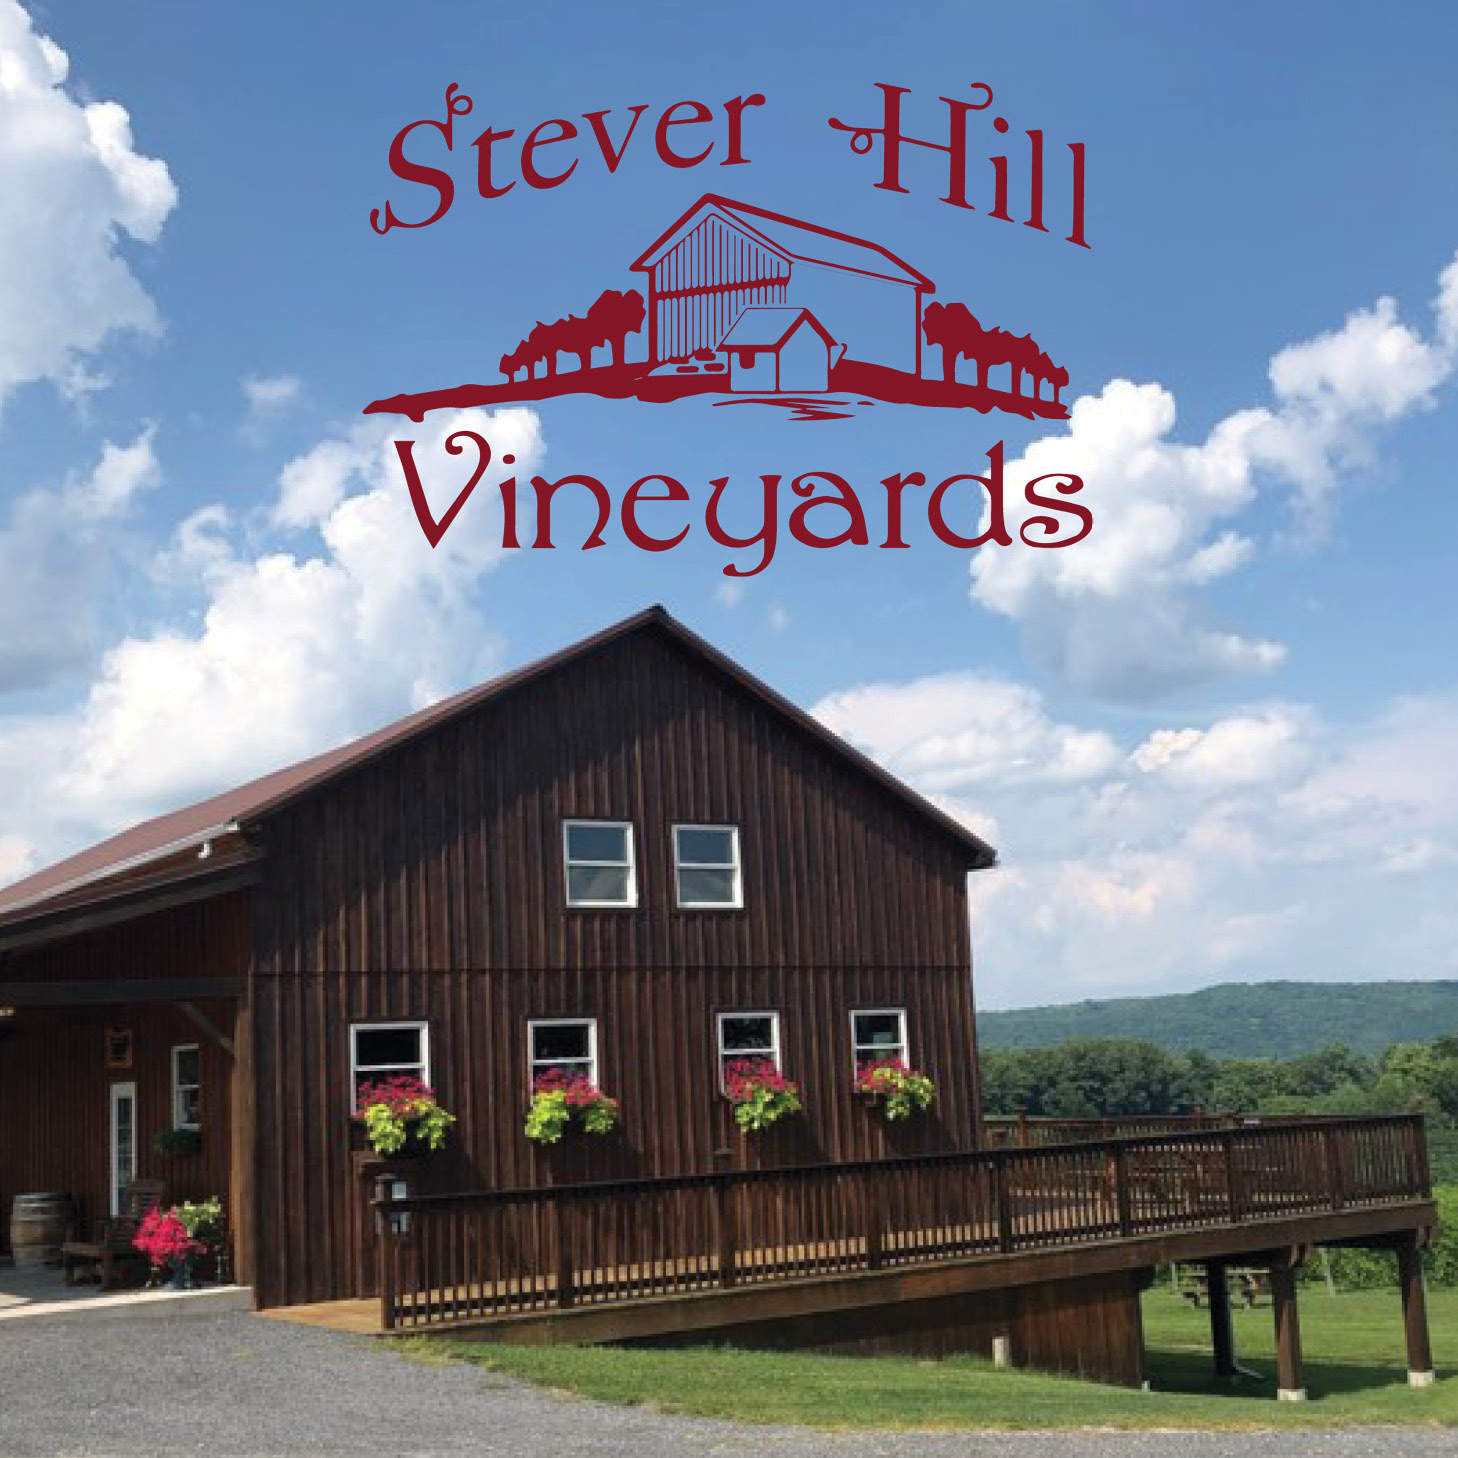 Welcome to our Newest Member - Stever Hill Vineyards